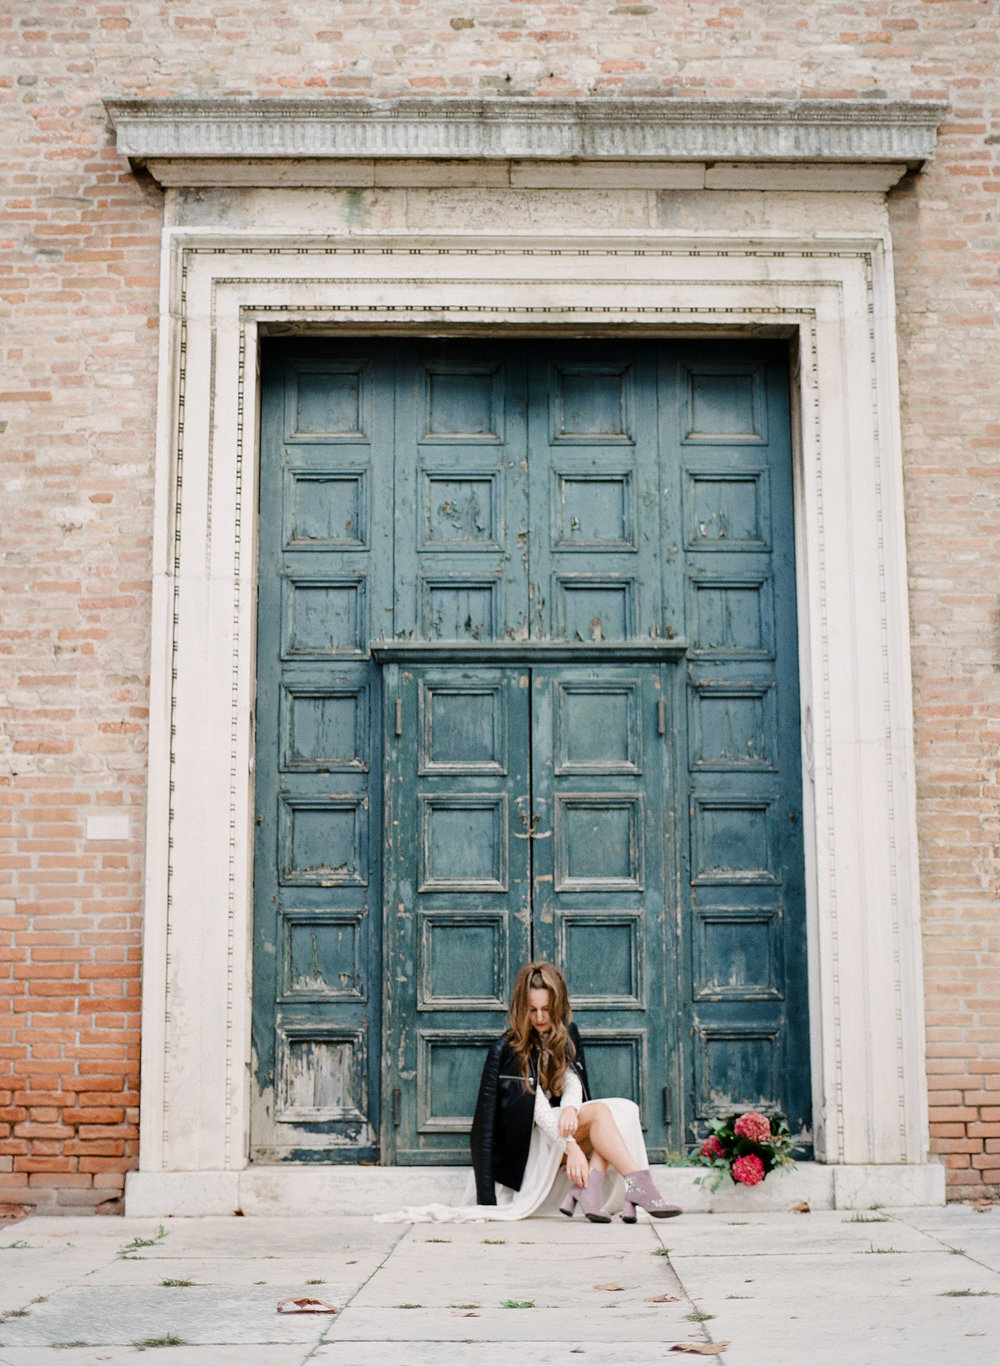 32 Venice Italy Photographer Wedding.jpg